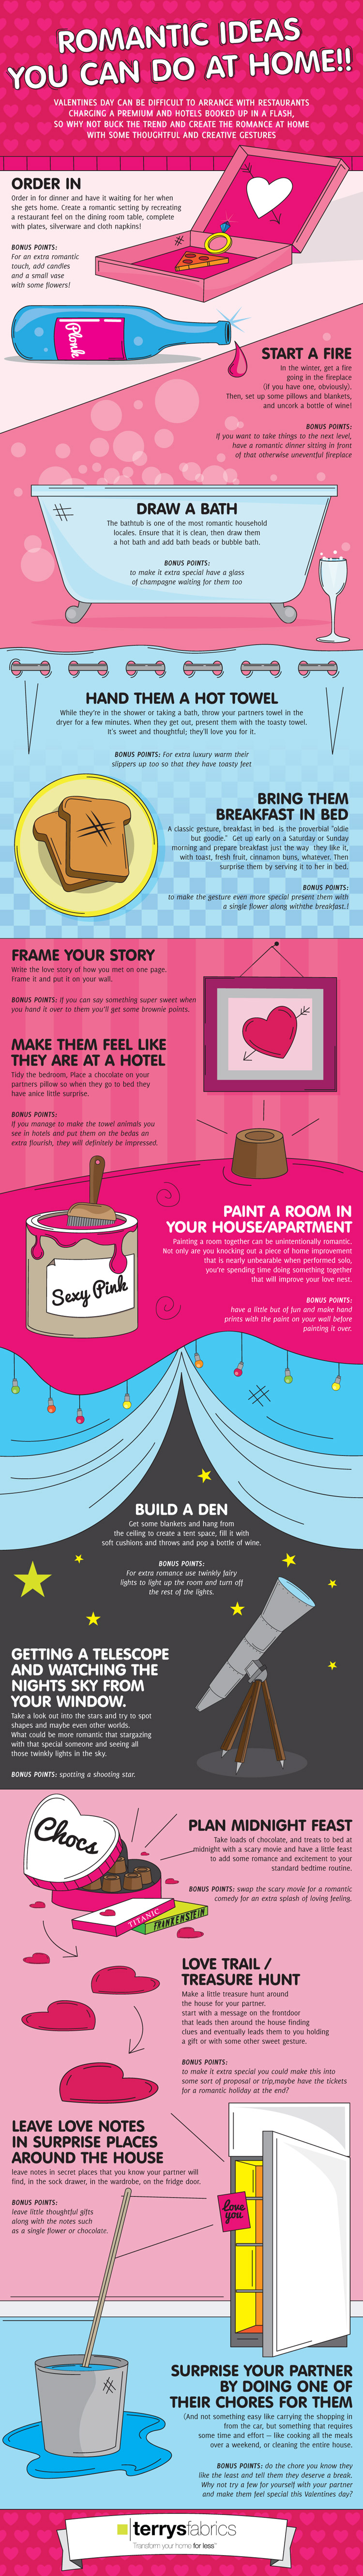 Romantic Ideas You Can Do At Home [Infographic]